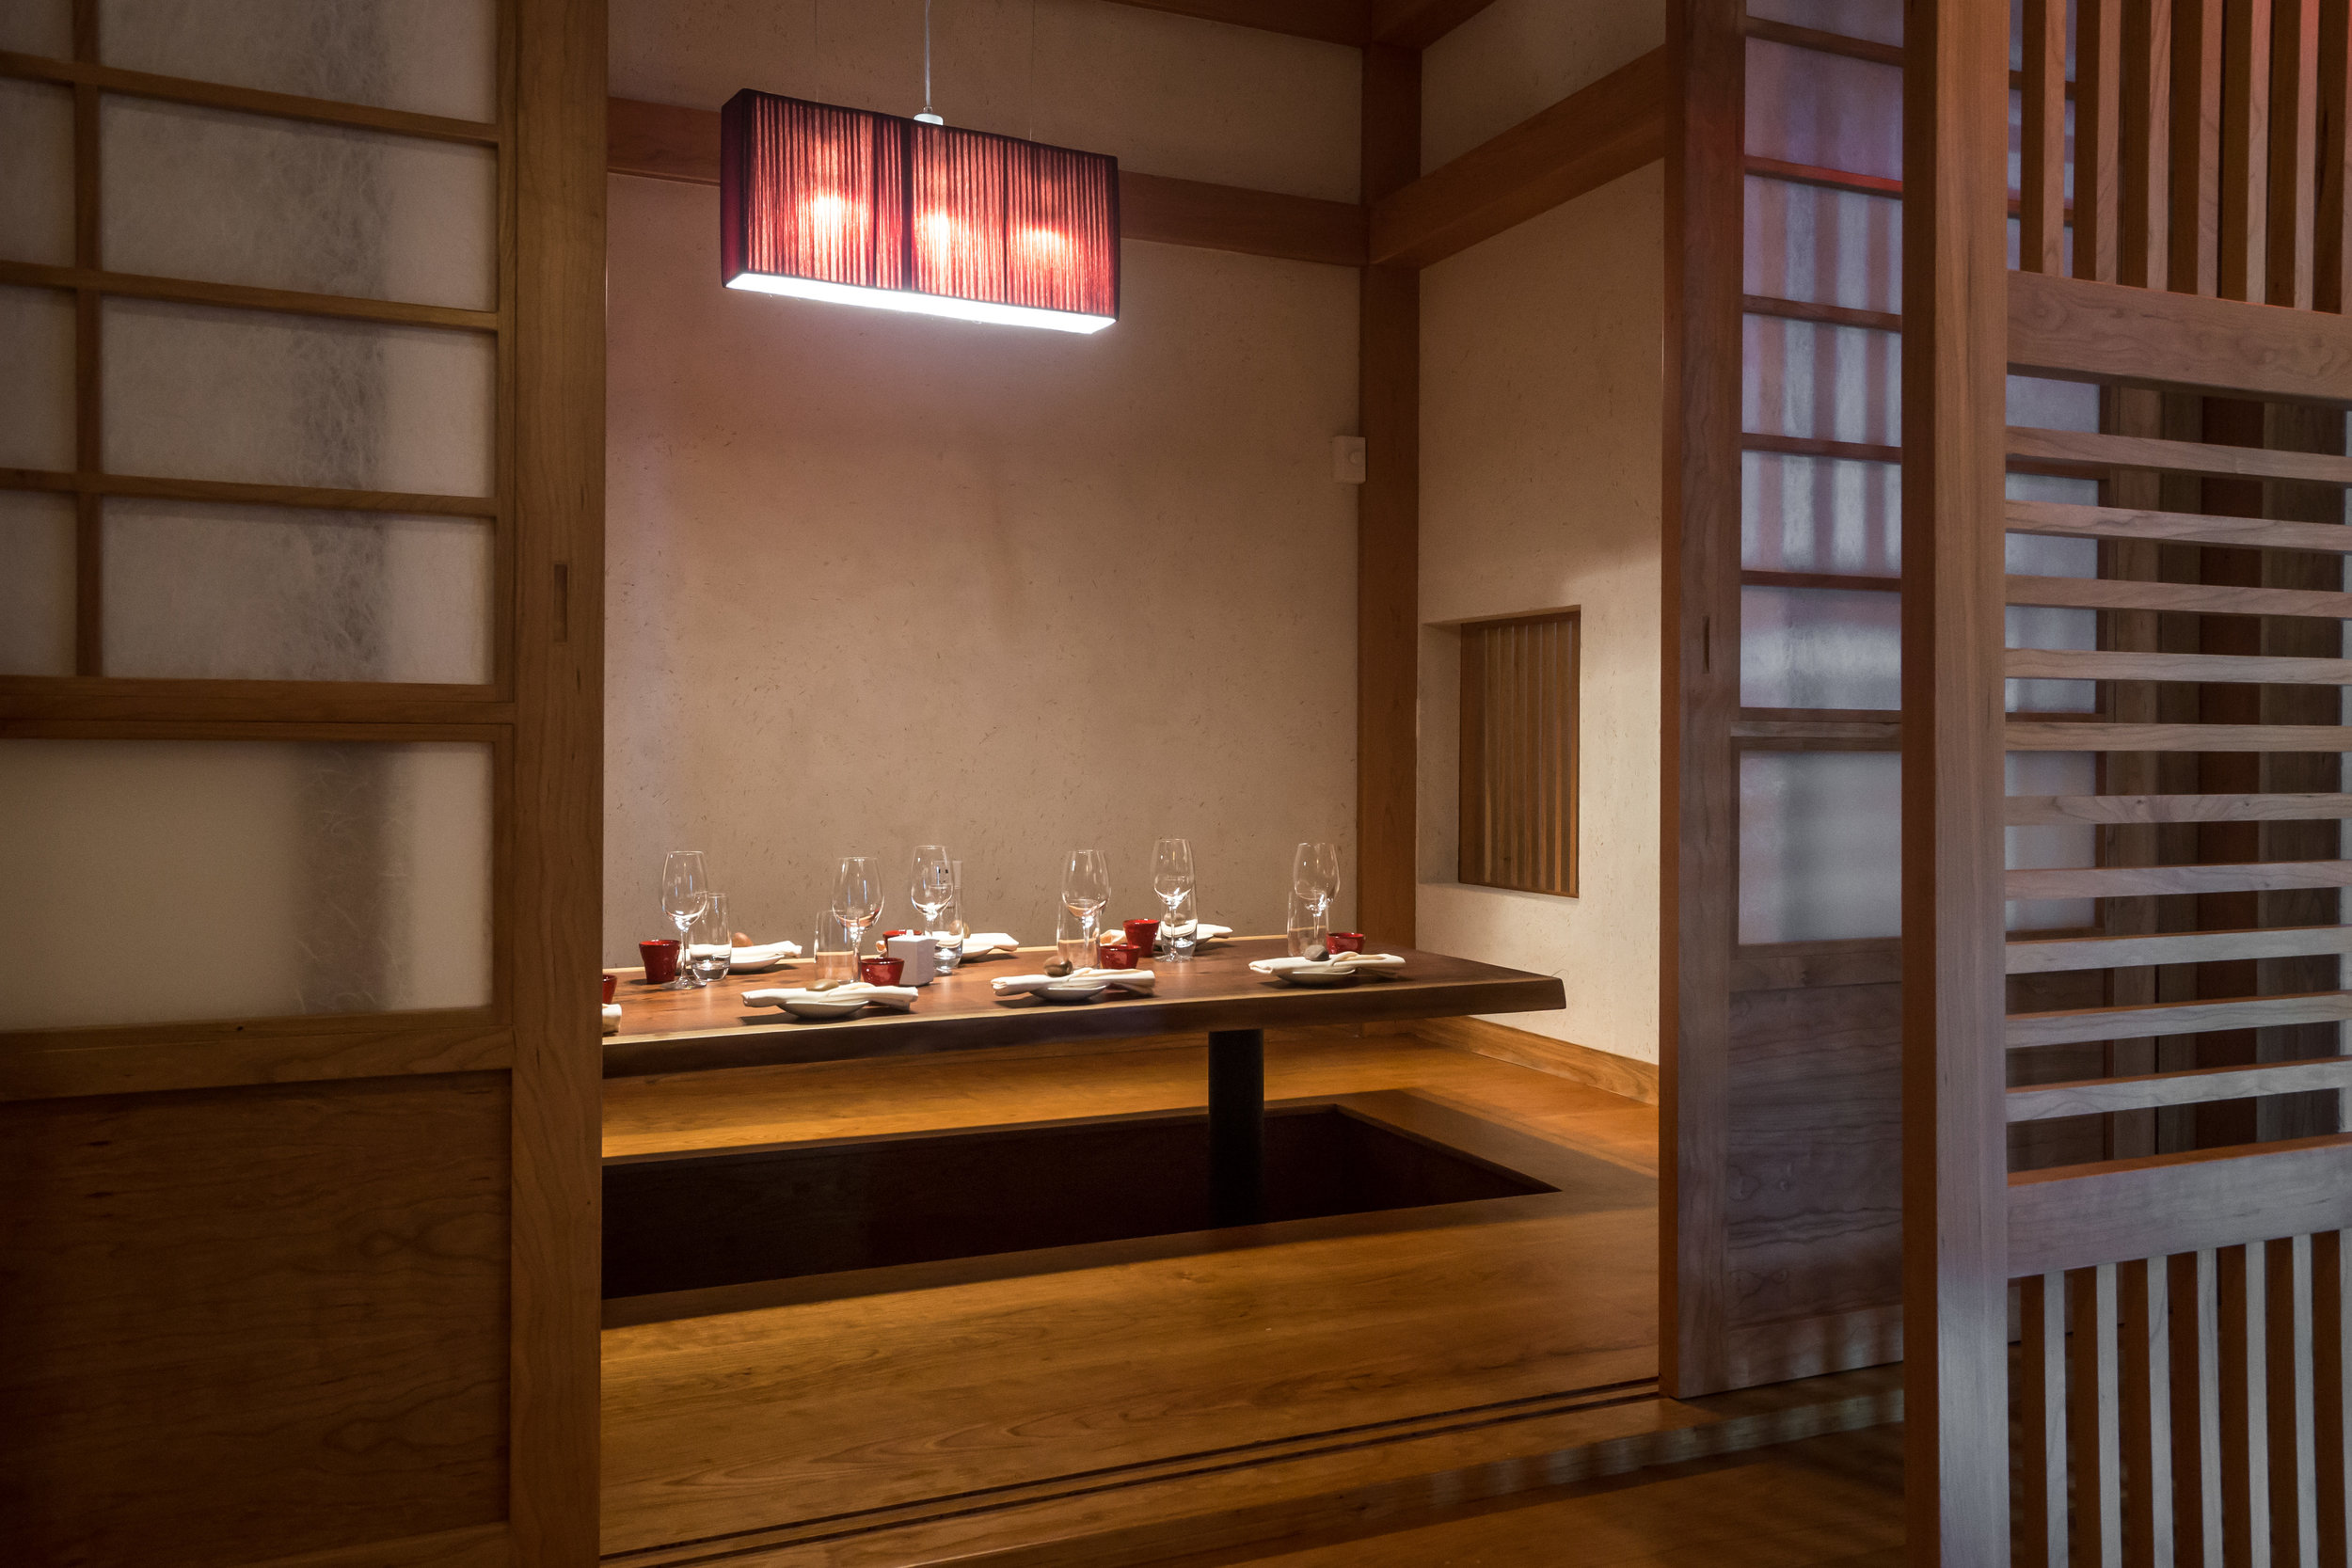 Tatami Rooms - Three Tatami Rooms are available which offer the utmost in privacy and seclusion. Independently they seat from 8-10 guests comfortably or can be combined for a total of 28 guests. Our special Omakase tasting menu is available in these Tatami Rooms.